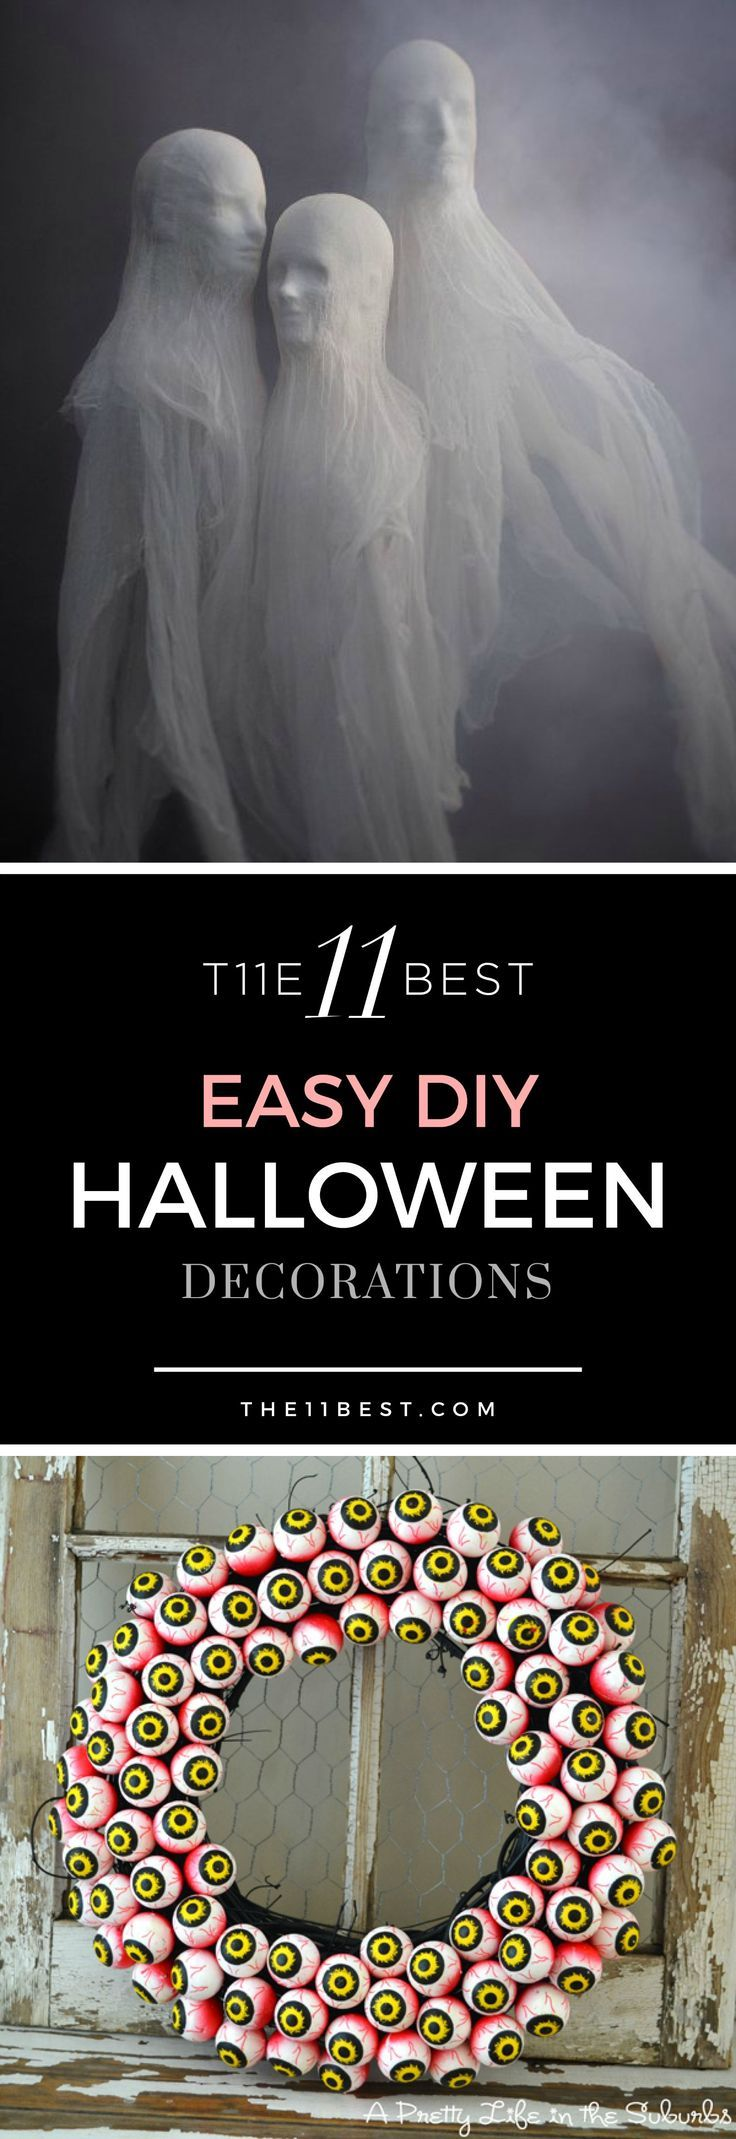 Easy homemade halloween decorations - The 11 Best Easy Diy Halloween Decorations